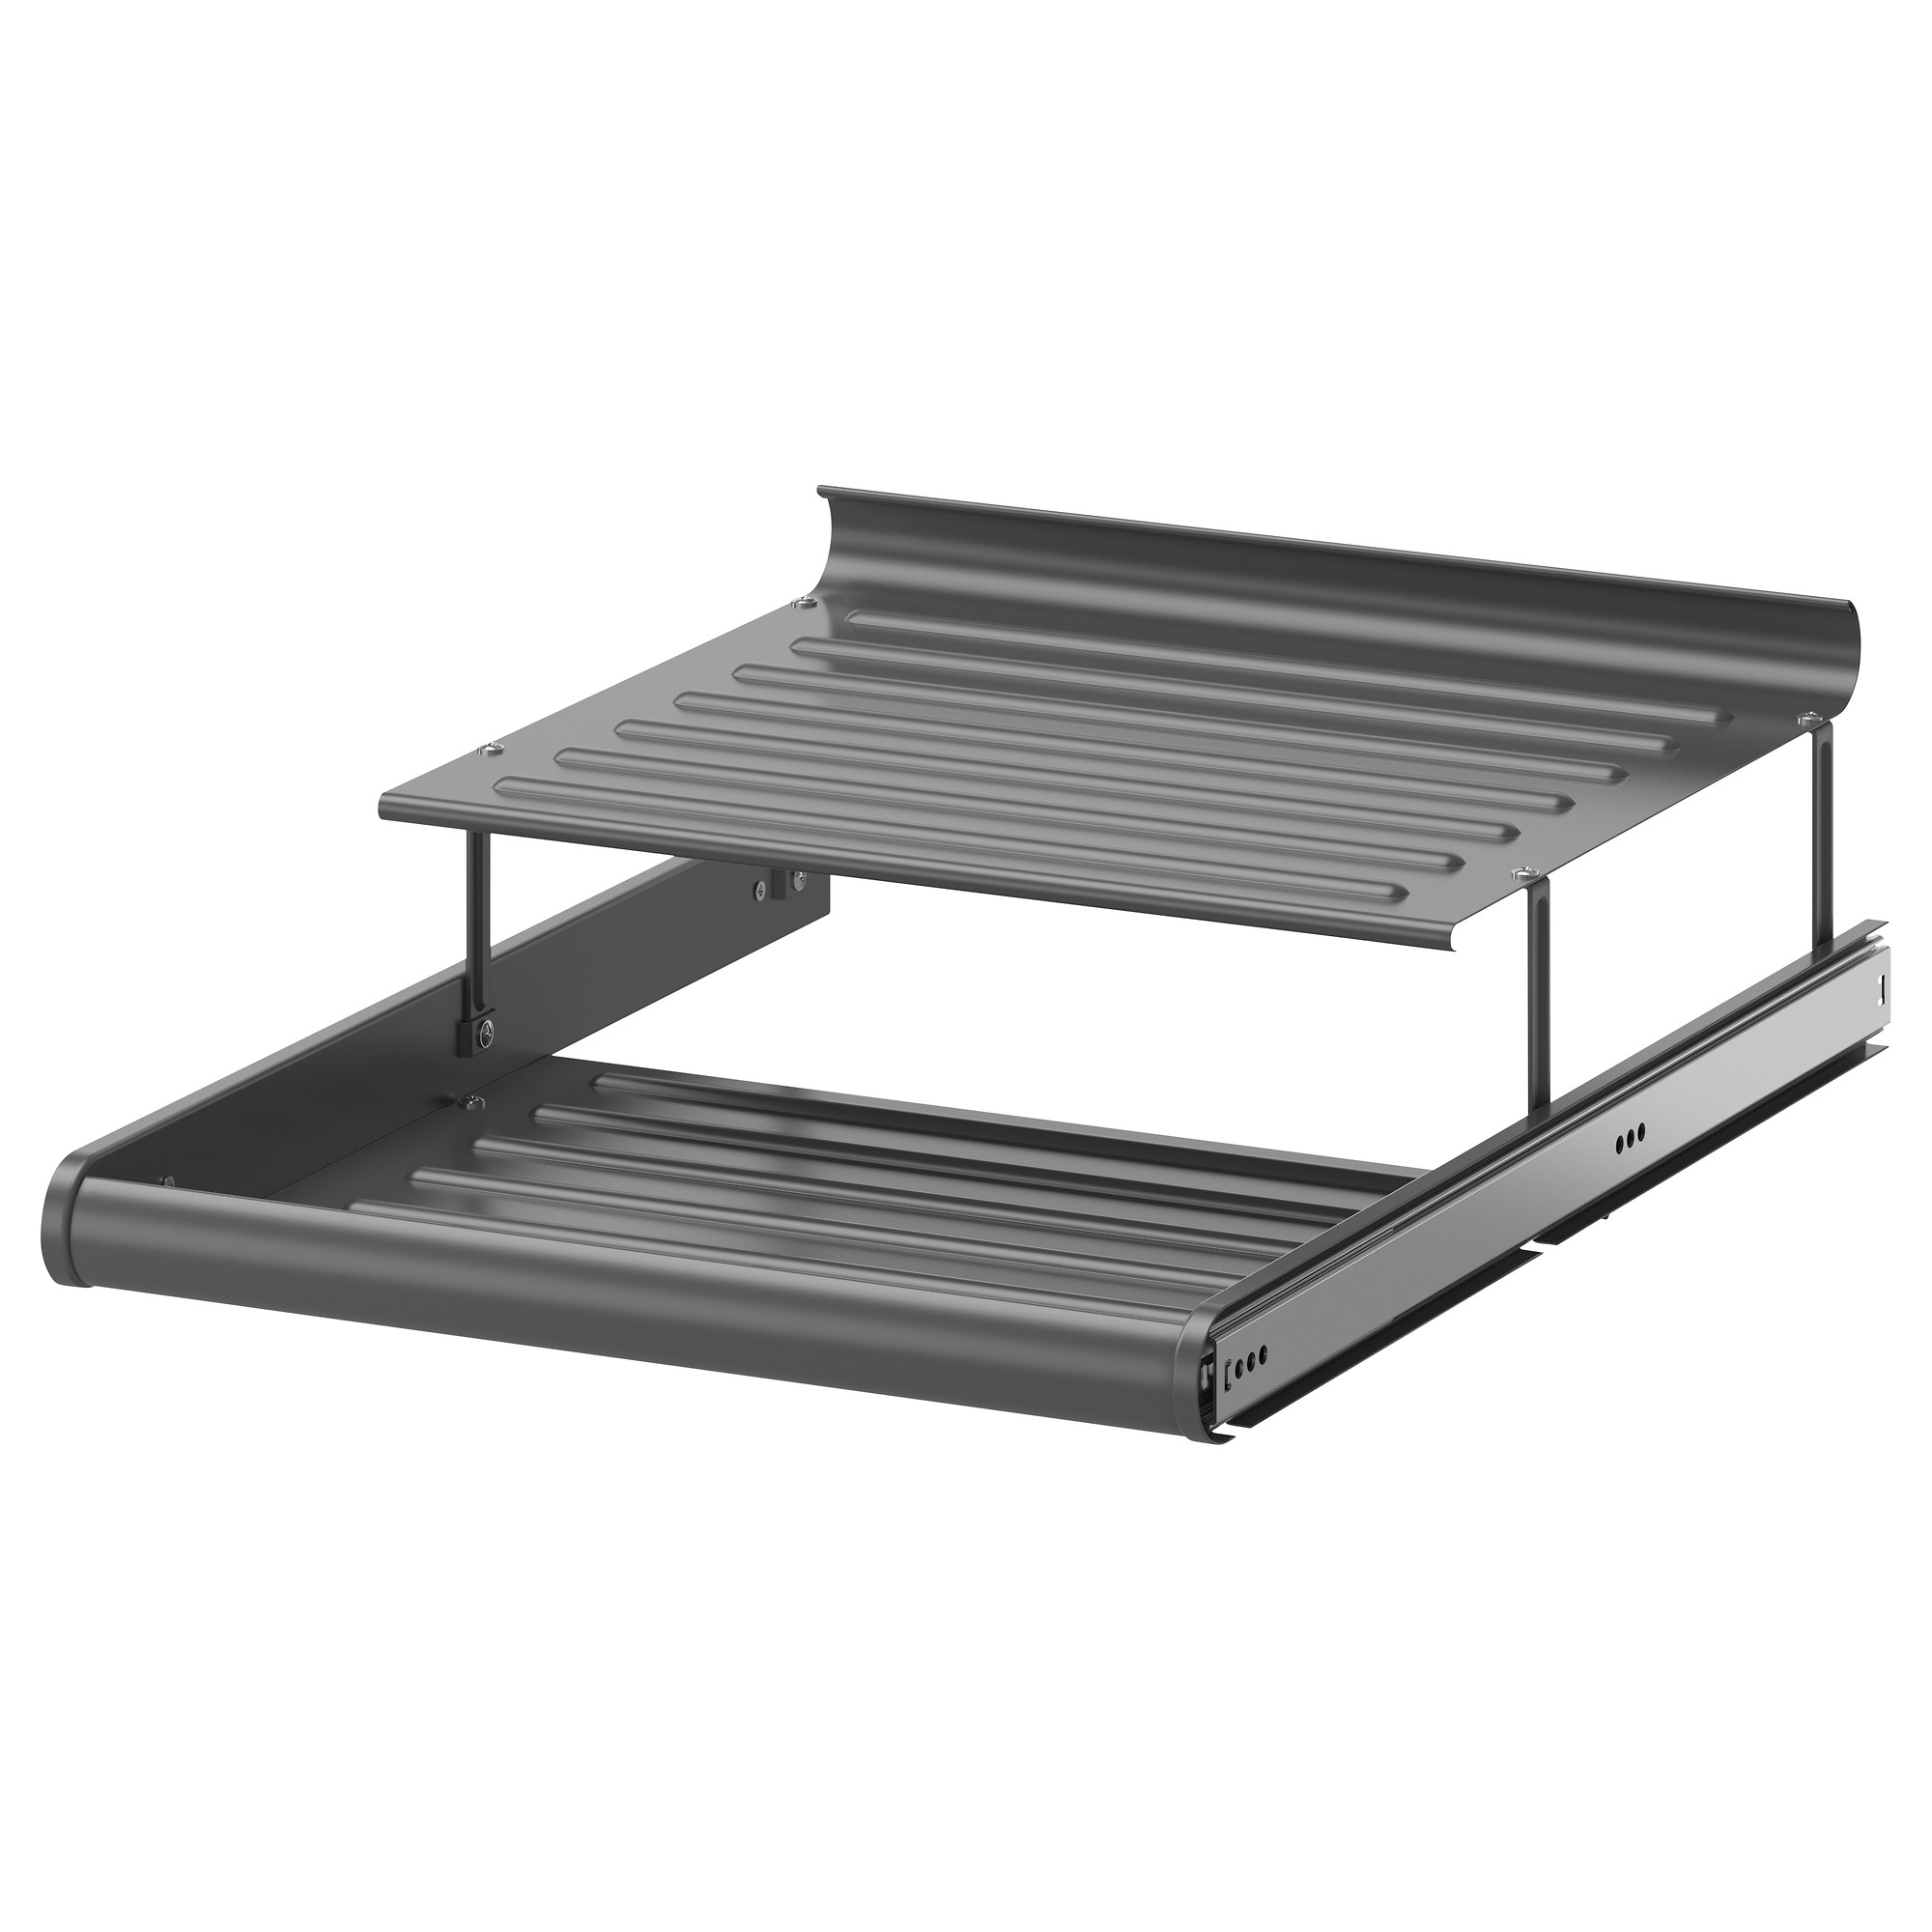 Design Ikea Shoe Racks komplement pull out shoe shelf dark gray 39 38x22 78 ikea